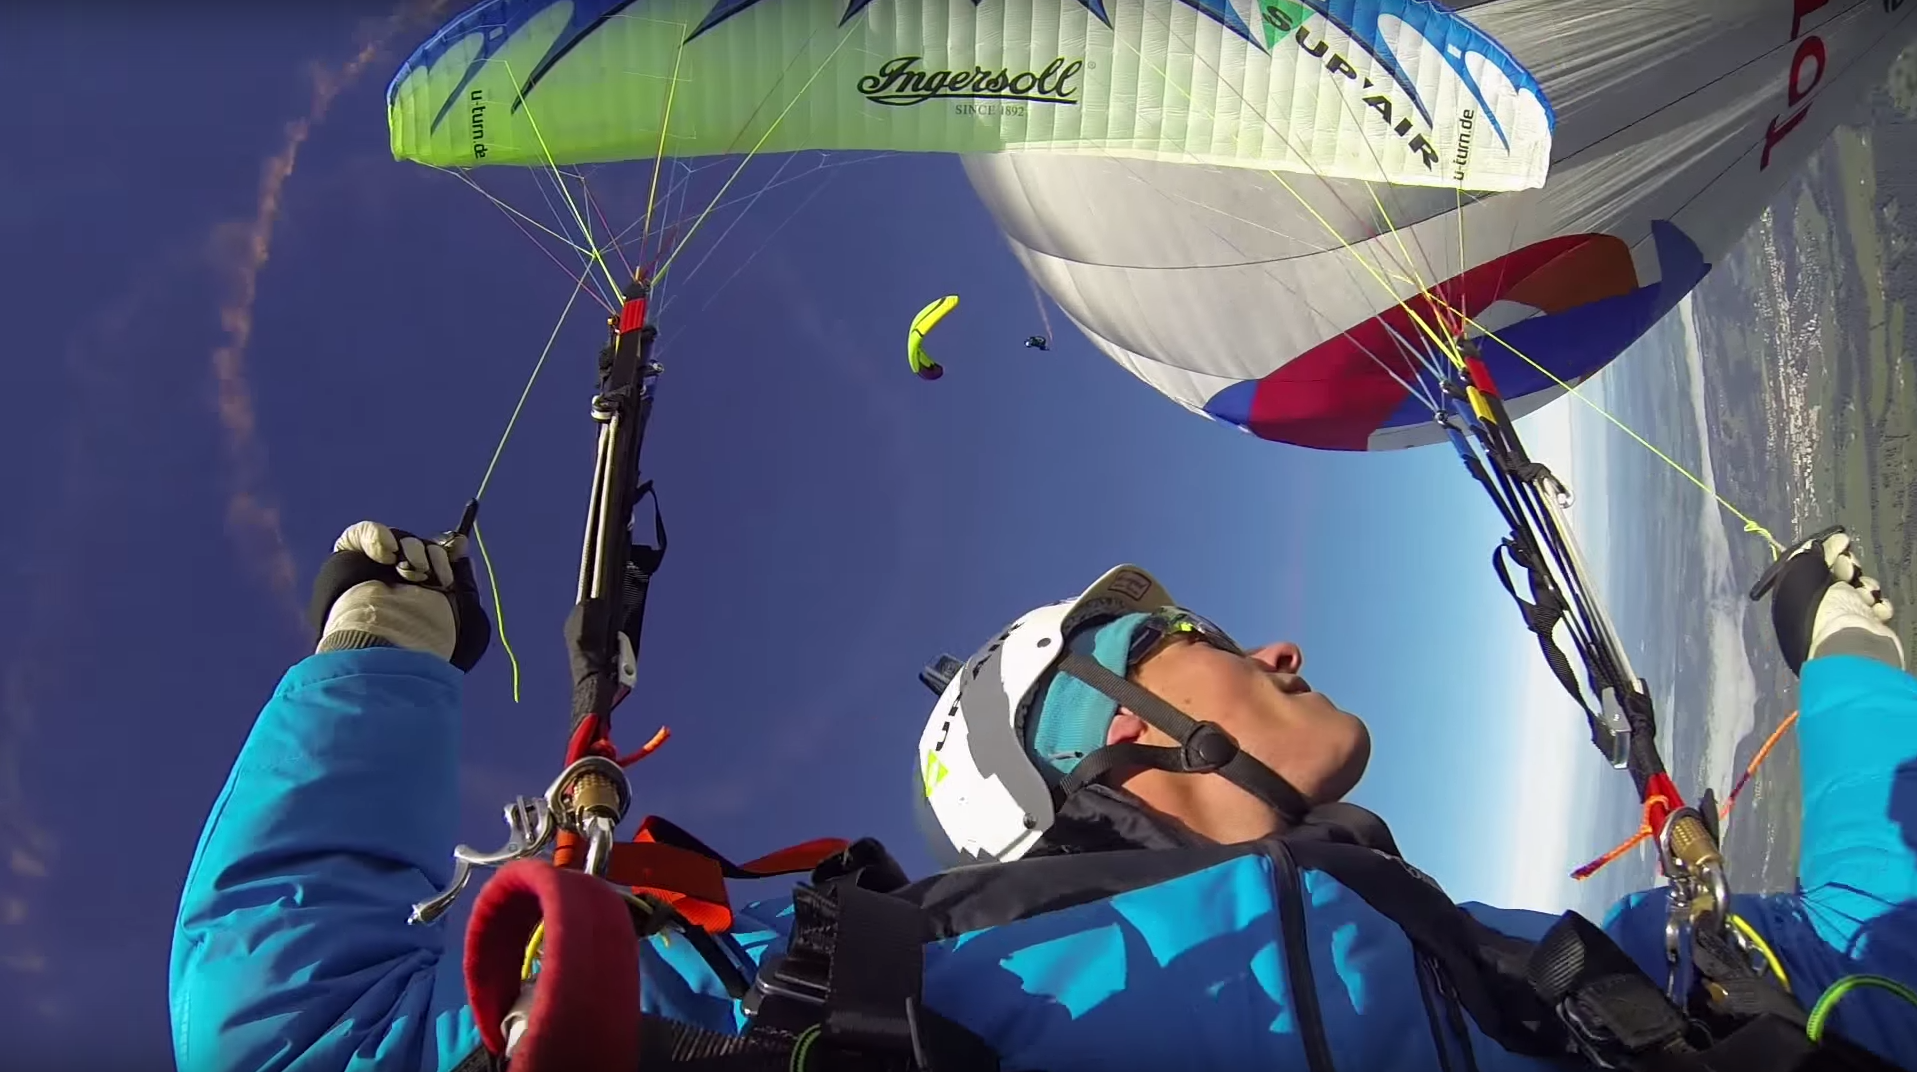 GoPro: High Altitude Paragliding